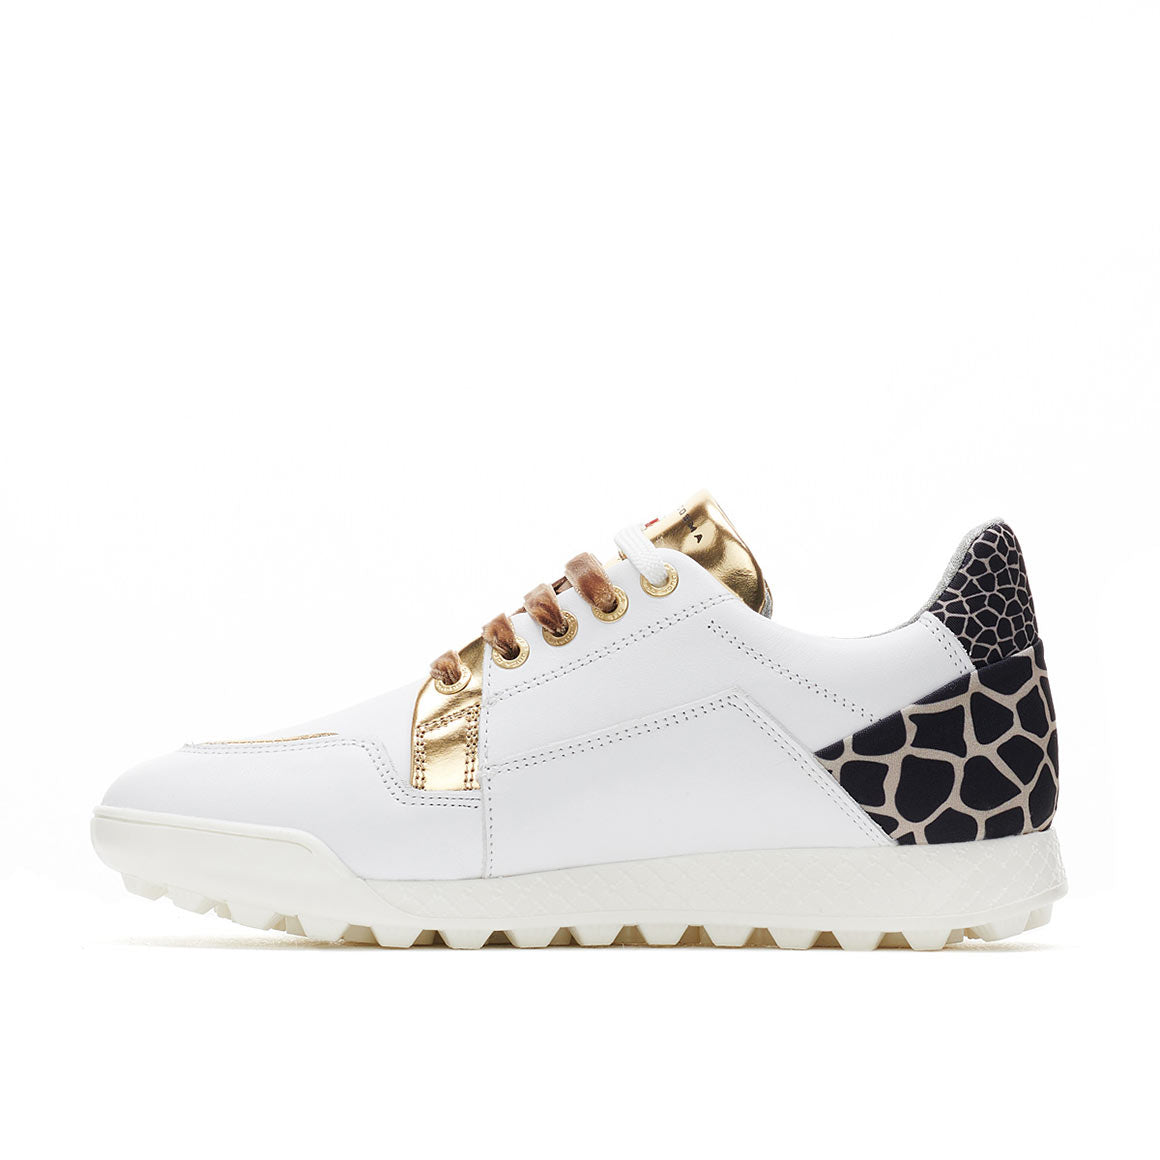 Women's Vinci White / Gold Golf Shoe